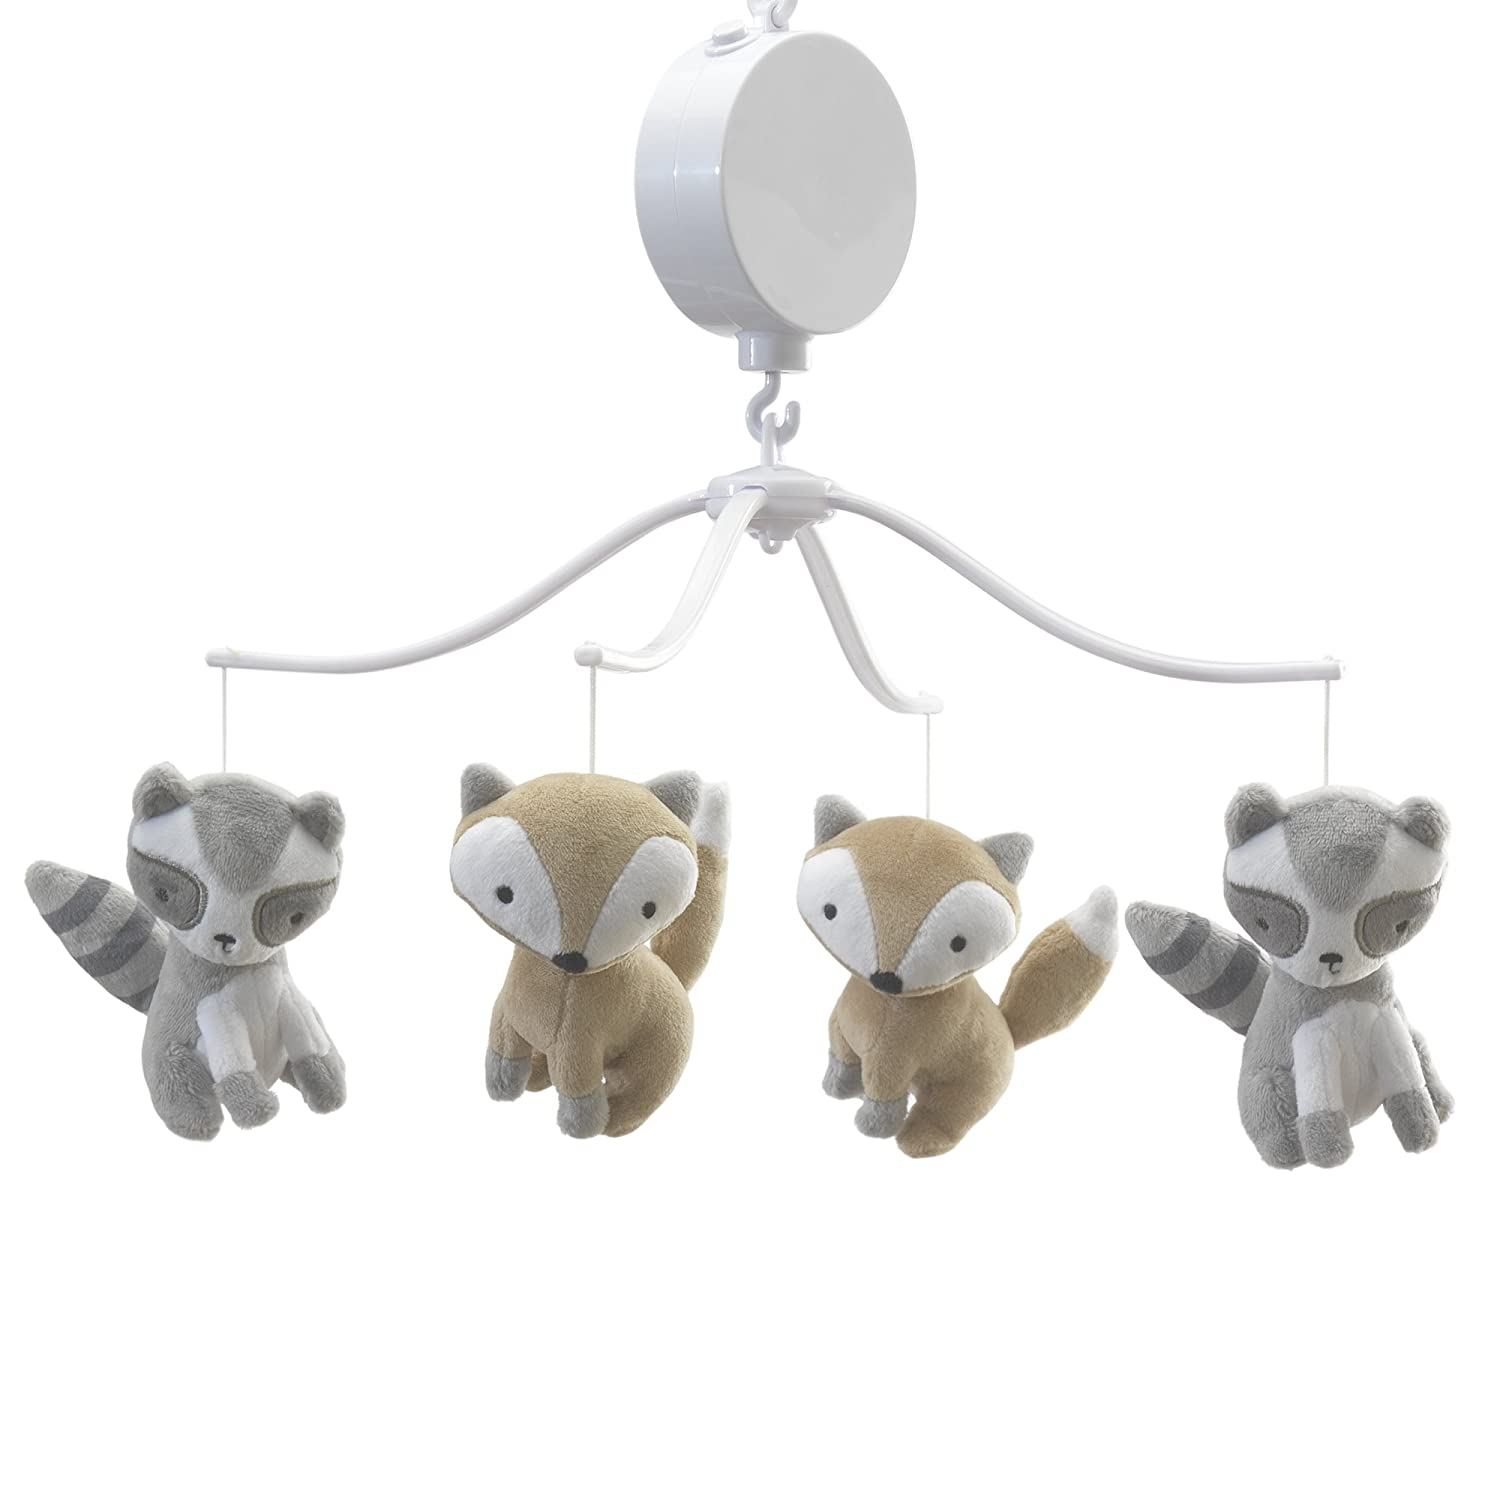 Bedtime Originals Little Rascals Forest Animals Musical Mobile, Gray/White Lambs & Ivy Bedtime 281018